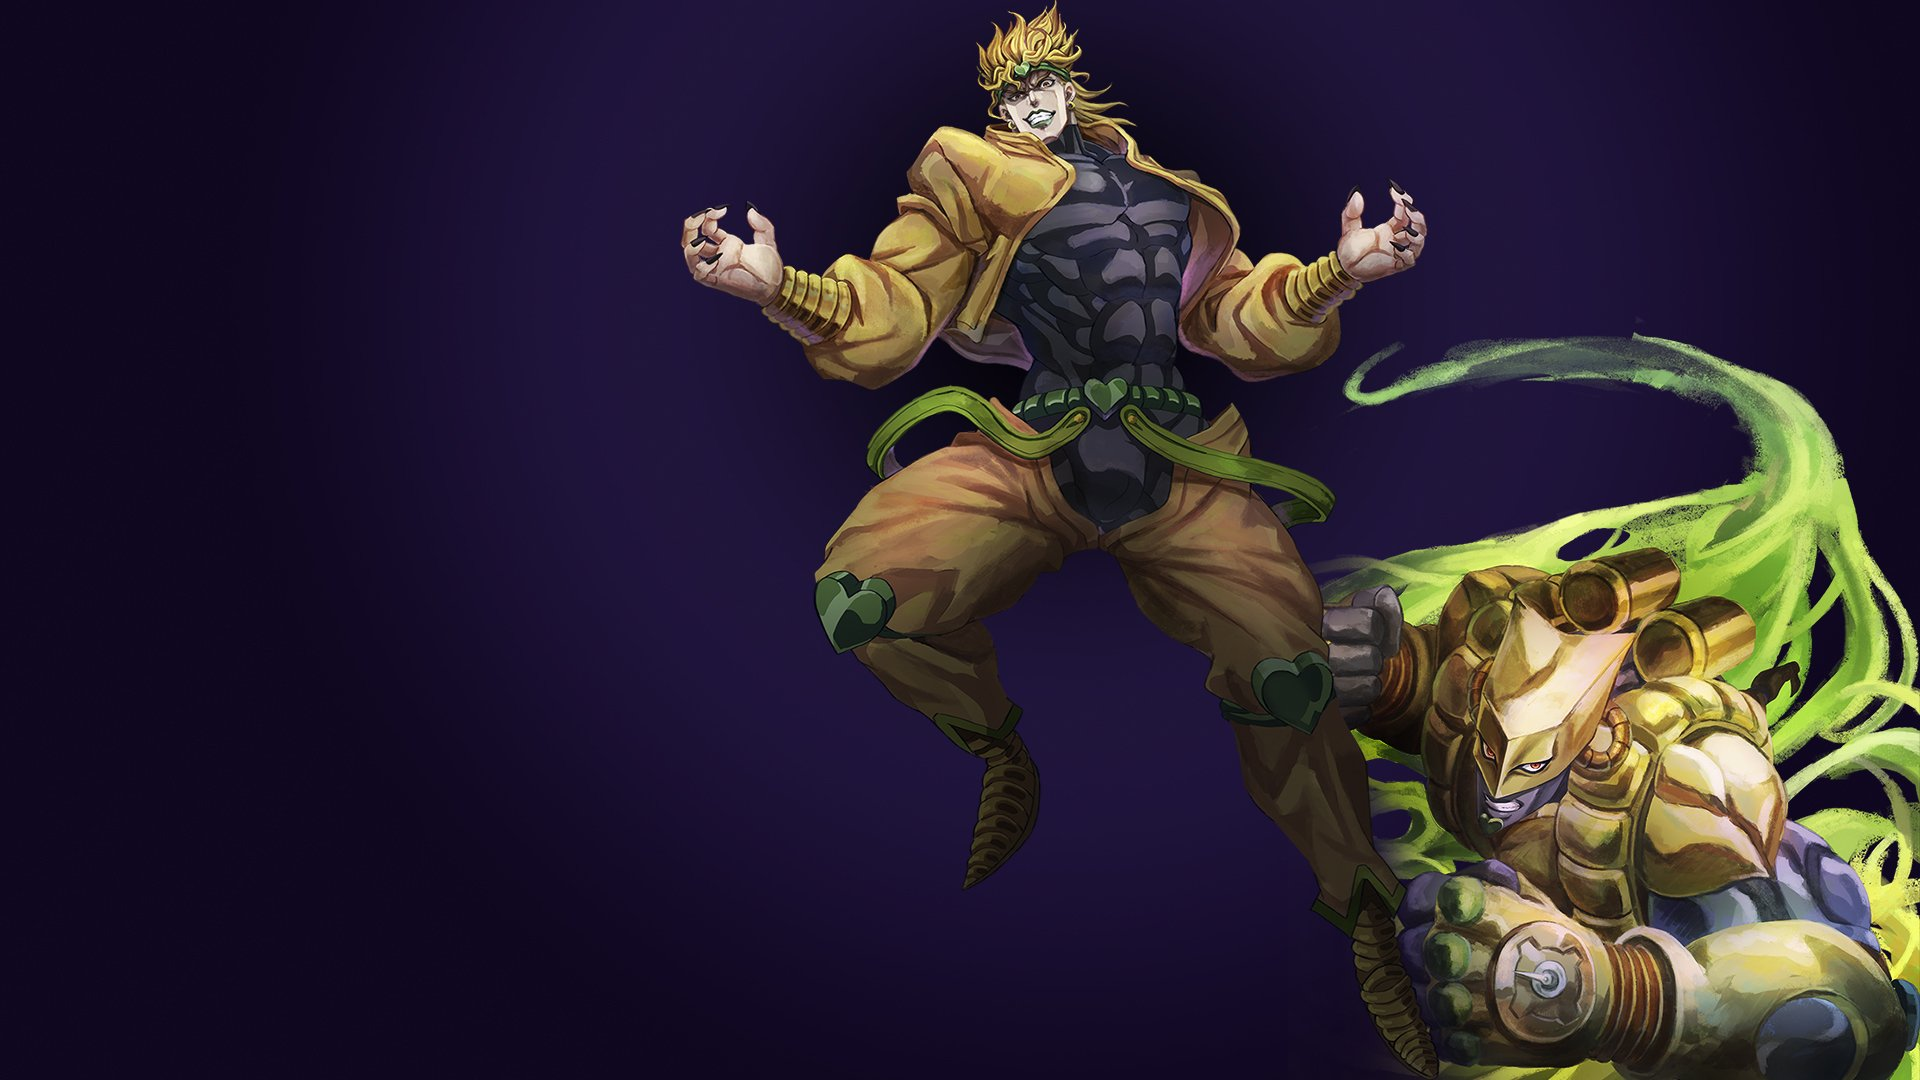 DIO and The World HD Wallpaper Background Image 1920x1080 ID 1920x1080